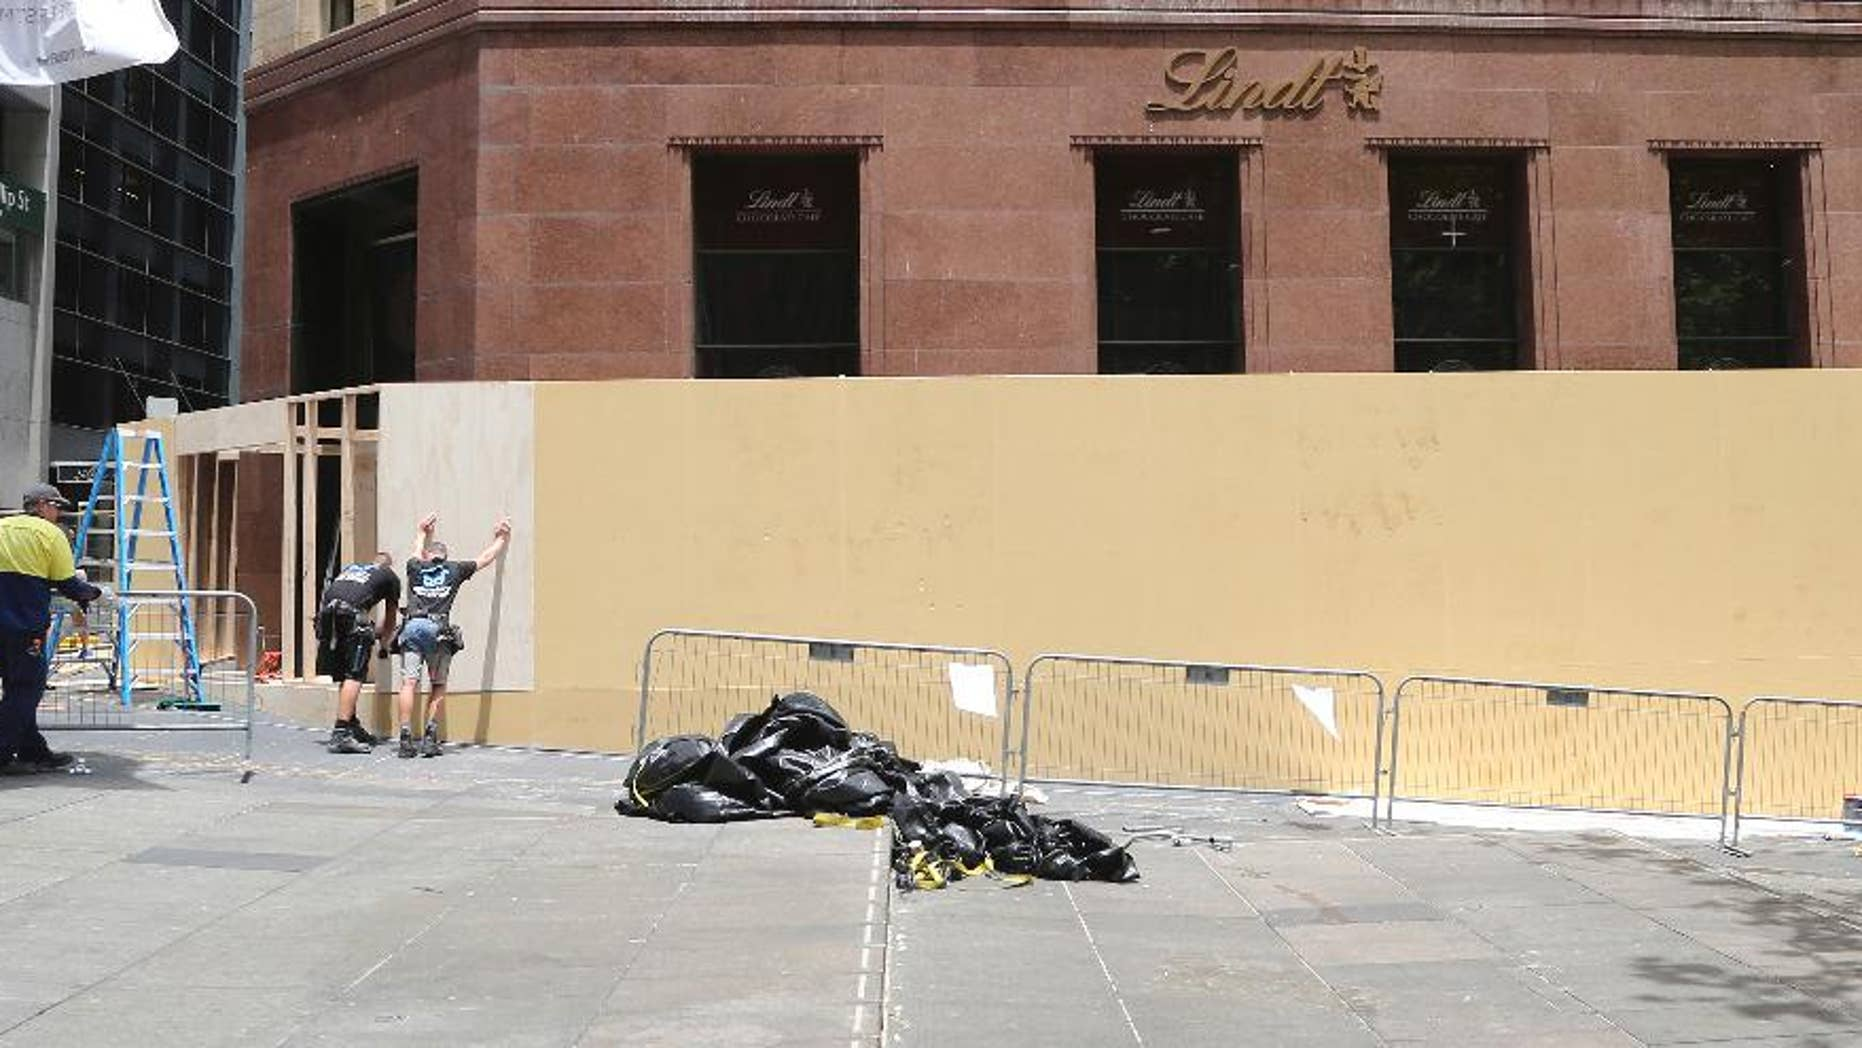 Dec. 23, 2014: Workers board up the Lindt Cafe in Martin Place in Sydney, Australia. Three people, including a gunman, were killed after police ended a siege in the central business district coffee shop in Sydney on Dec. 16. (AP Photo/Rob Griffith)